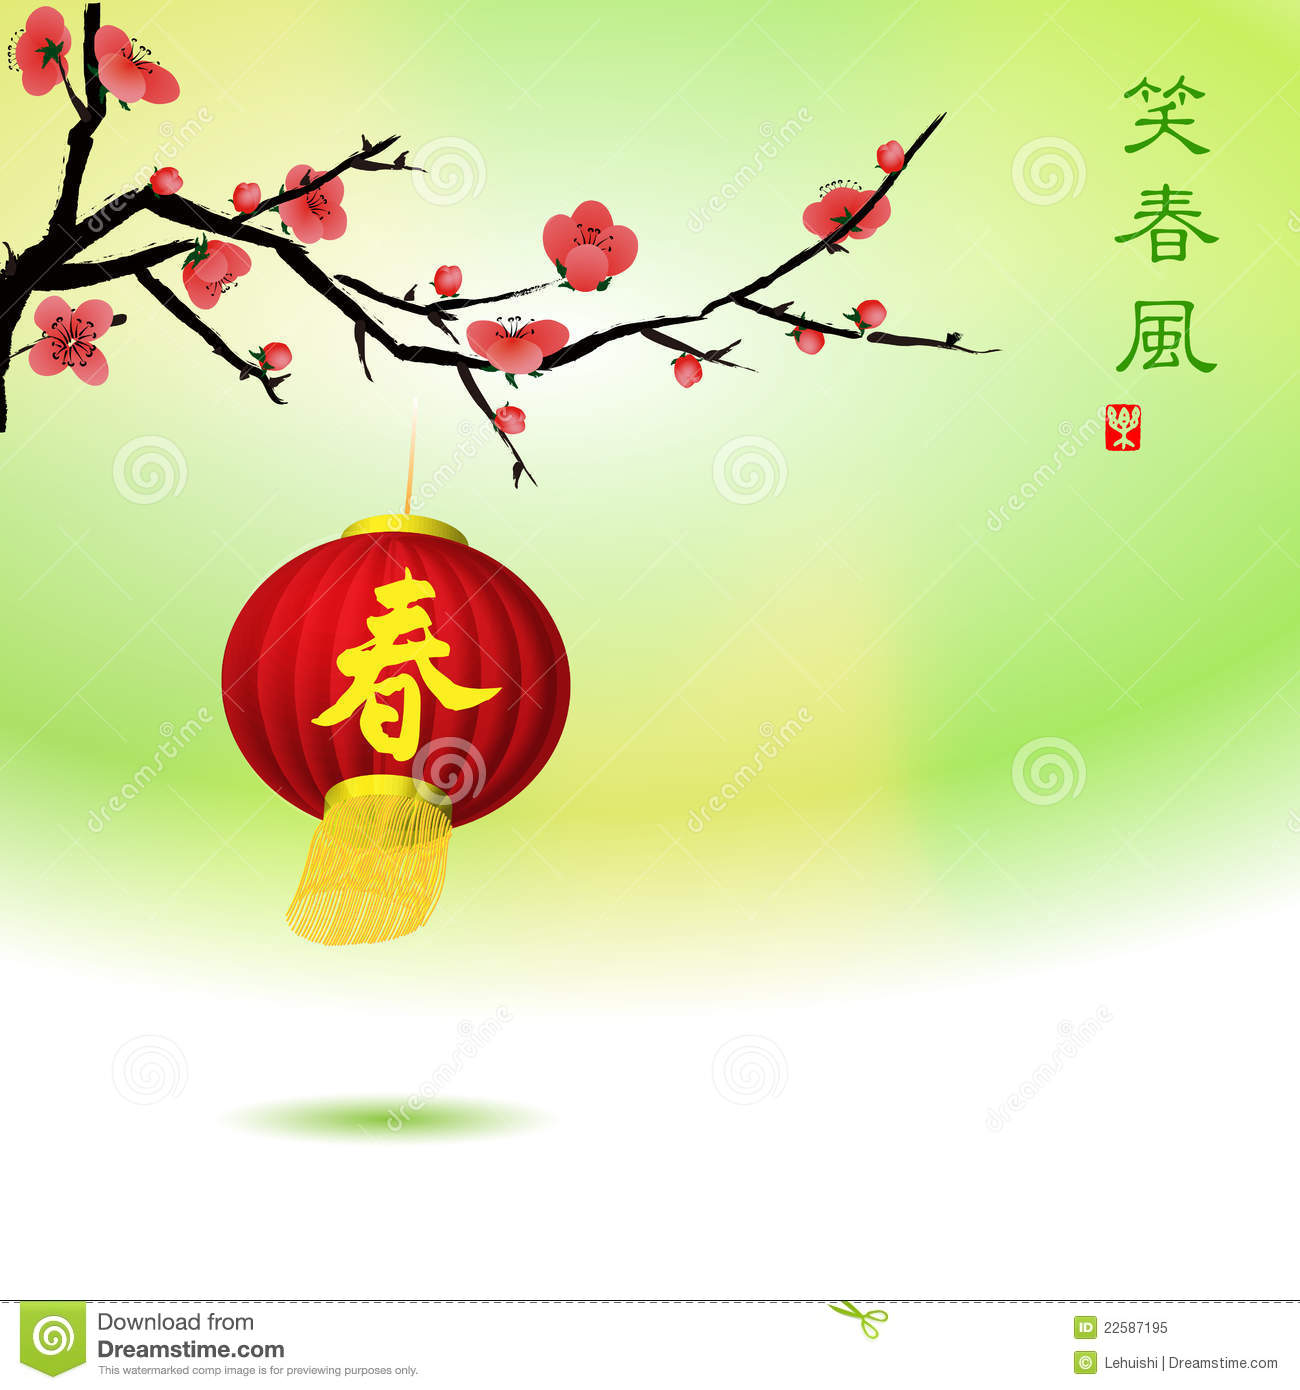 plum blossom background with red chinese lanterns stock